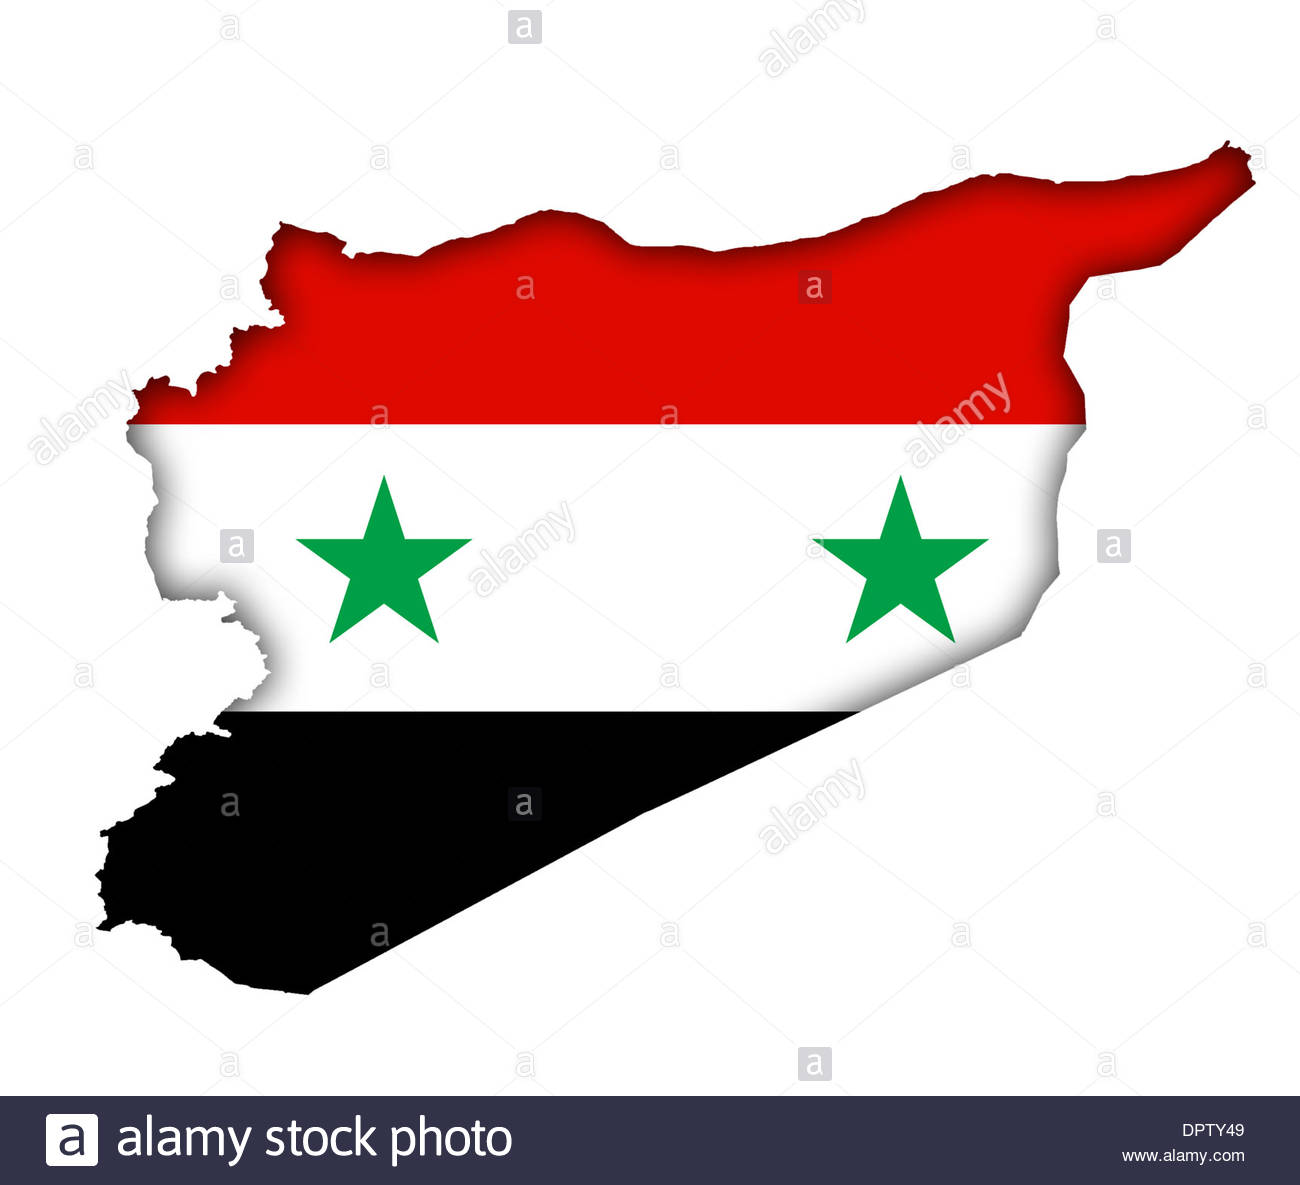 Syria Flag Banner Icon Map Plan Stock Photo Royalty Free Image - Syria flag